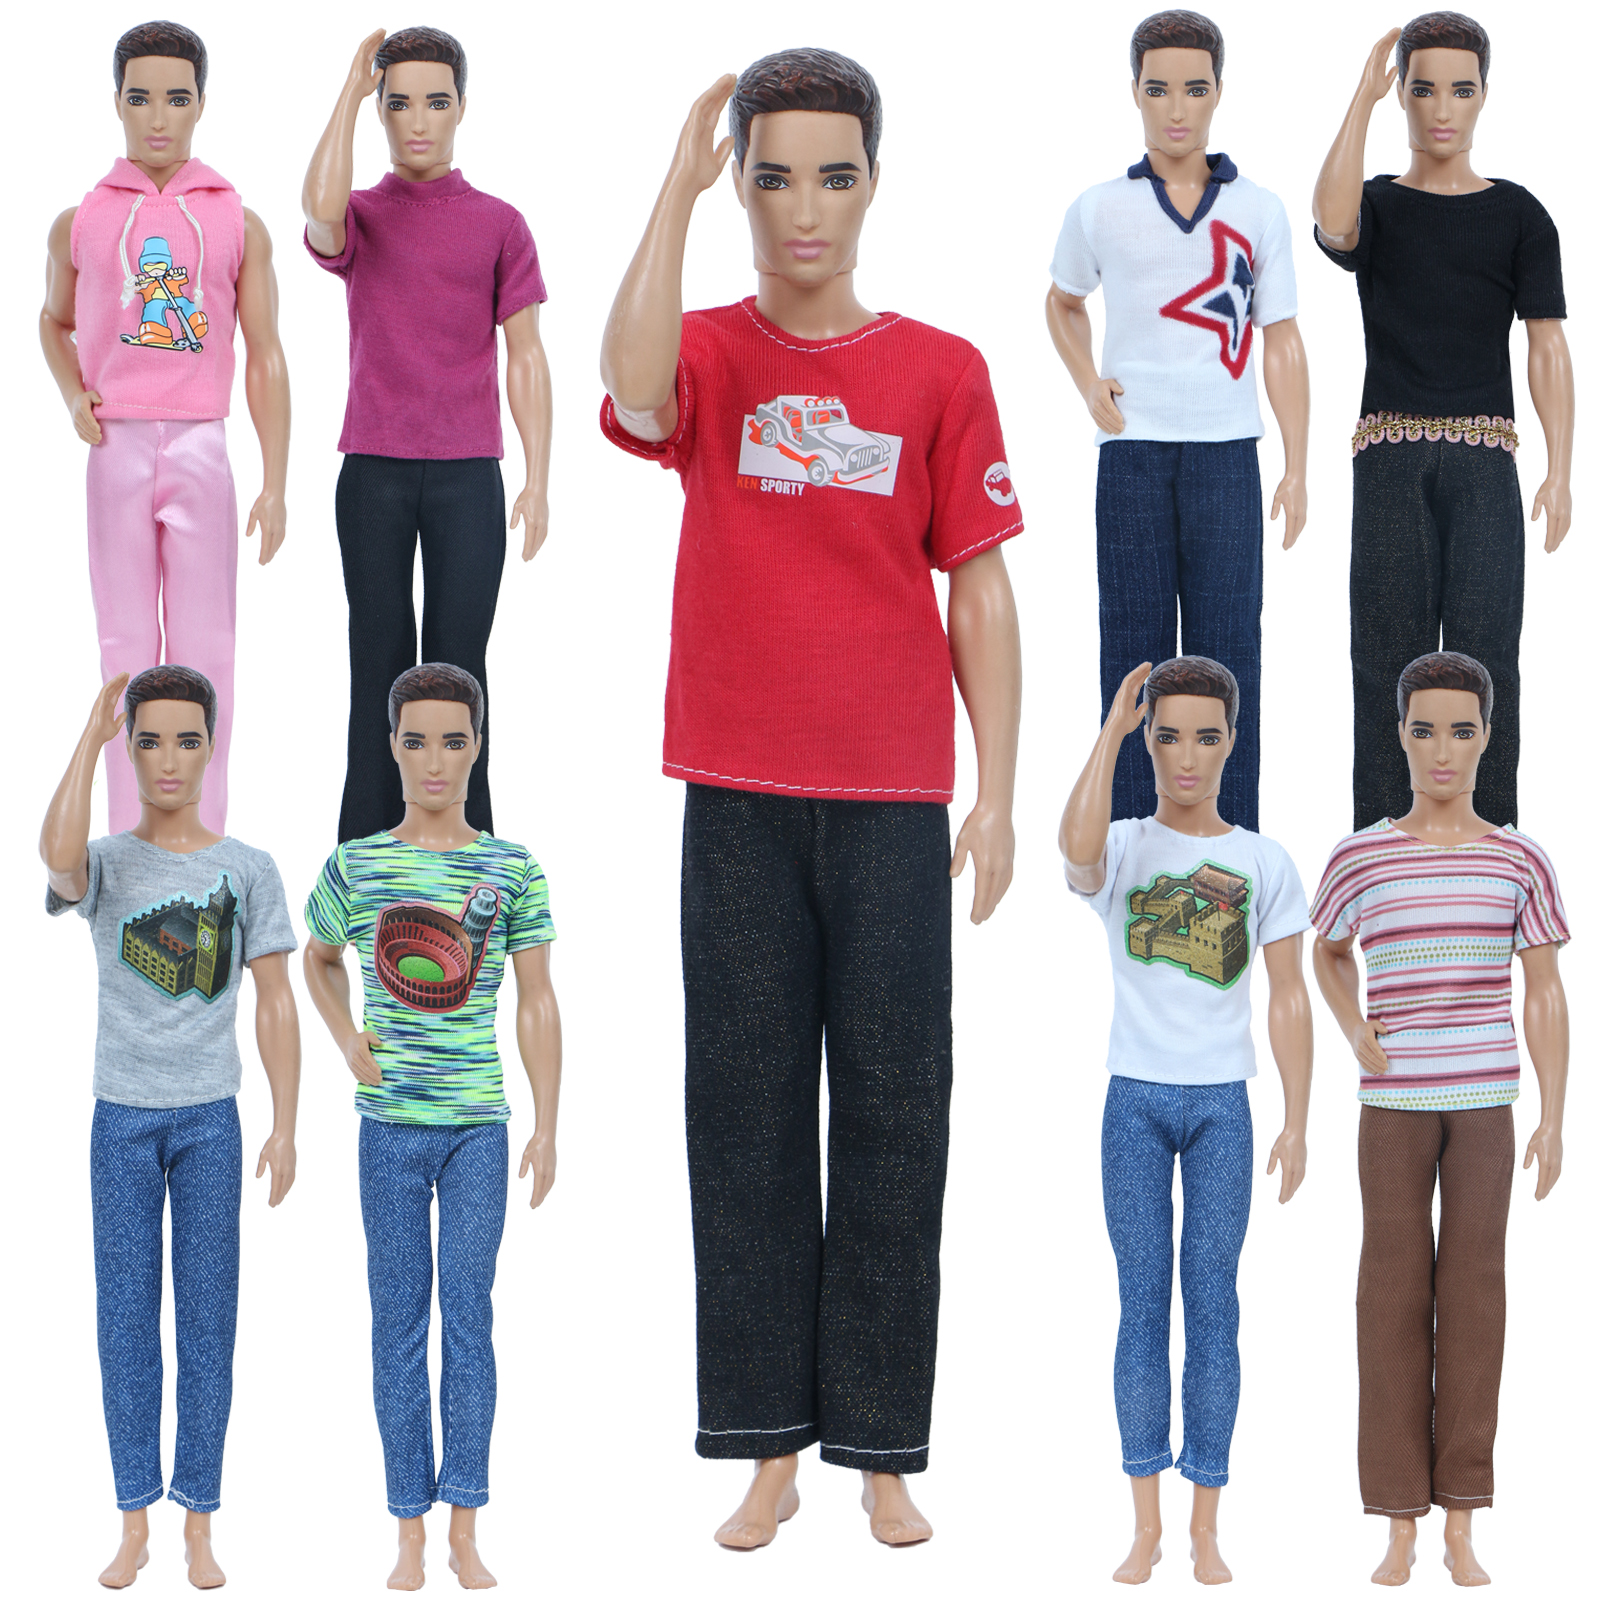 Set of 4 Ken Doll Outfits 2 Pair of Shorts /& 4 Striped Polo Shirts 6 Pcs for Ken